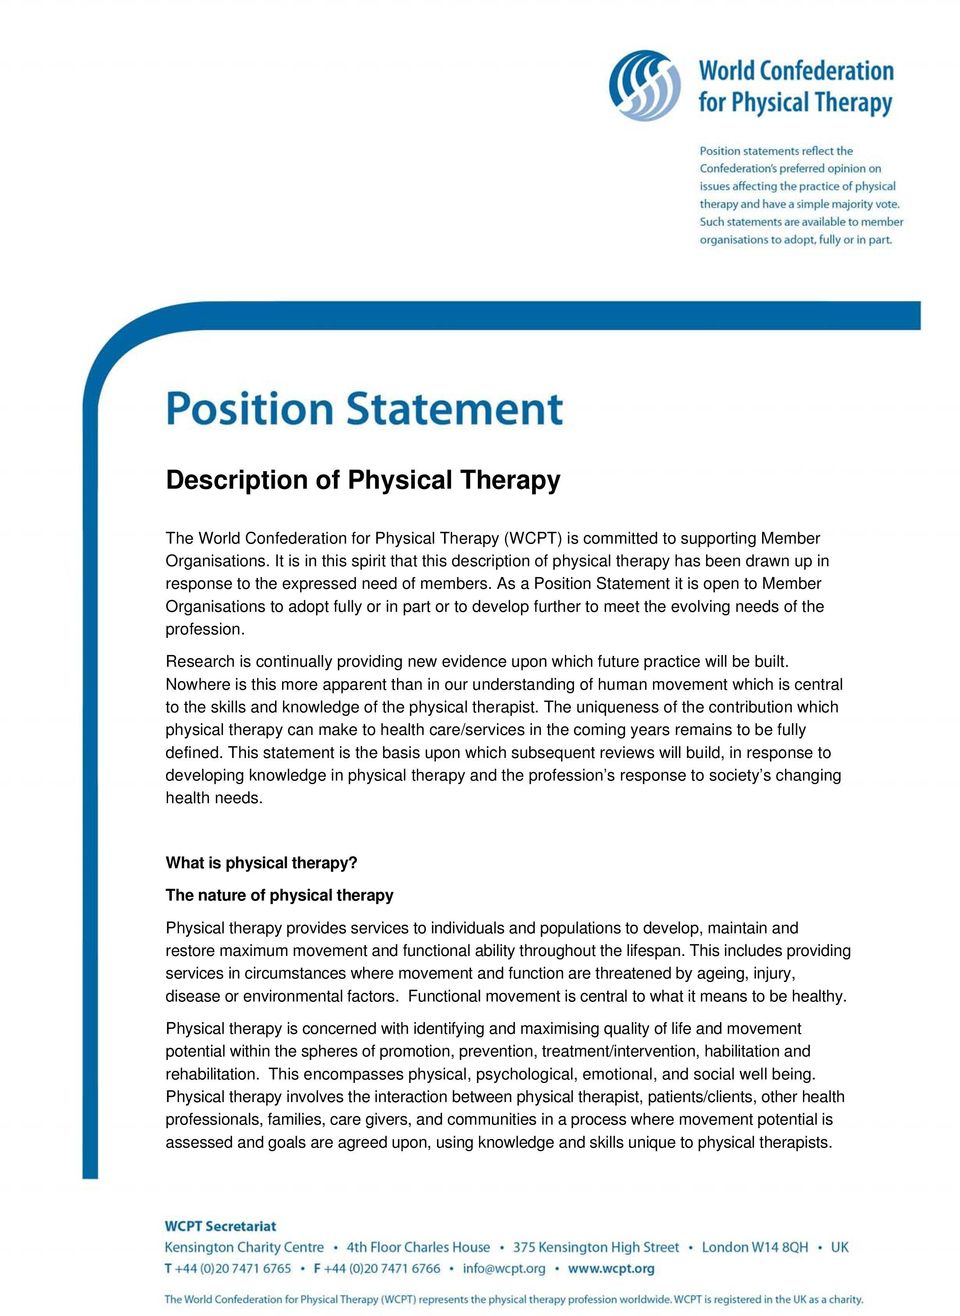 As a Position Statement it is open to Member Organisations to adopt fully or in part or to develop further to meet the evolving needs of the profession.